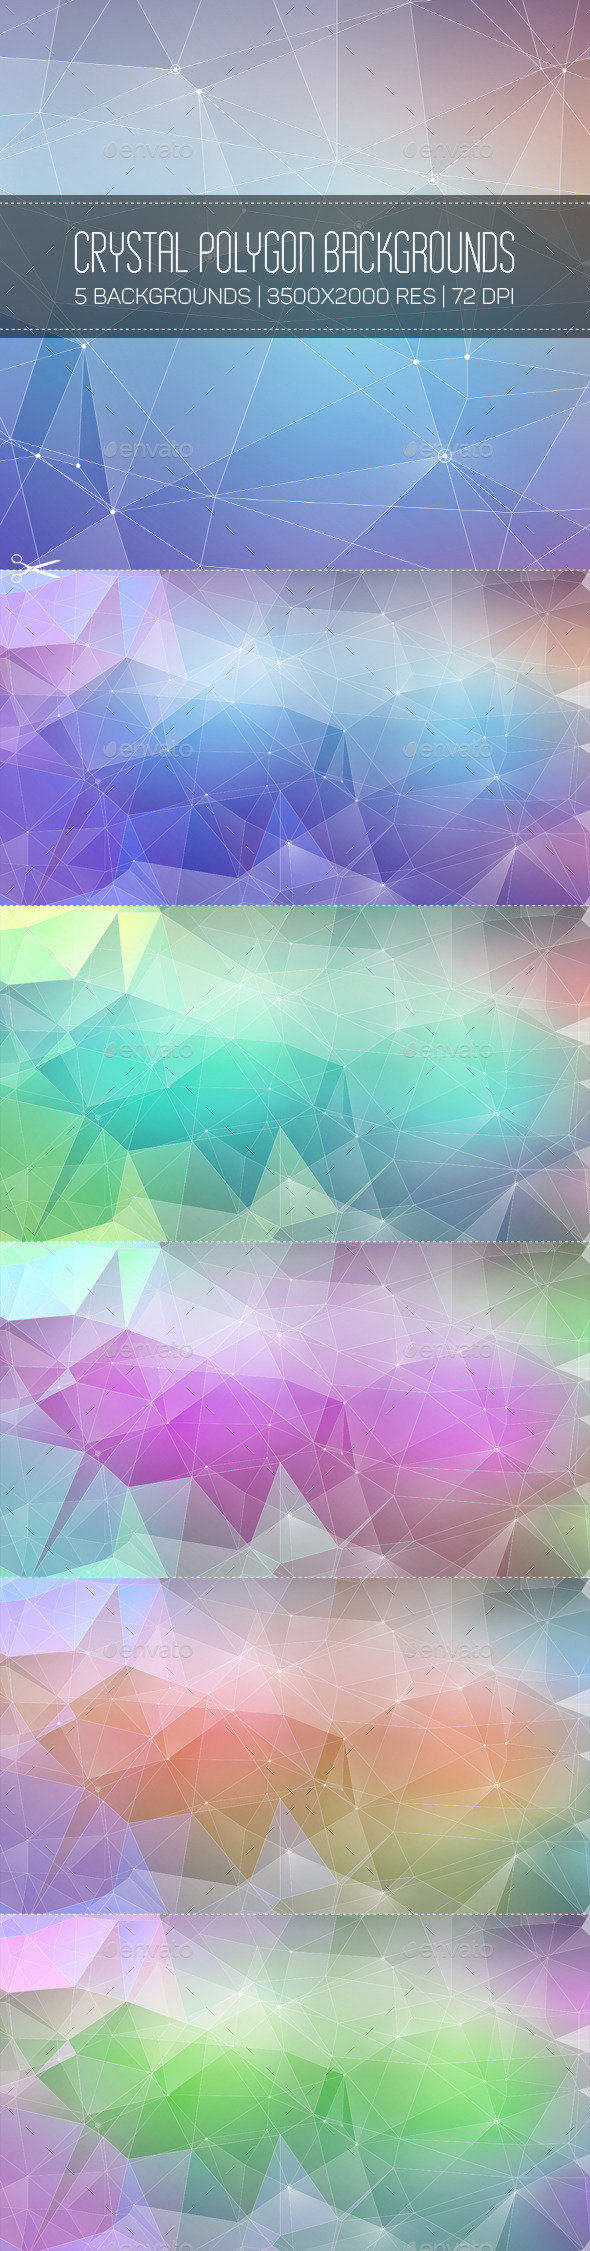 GraphicRiver Crystal Polygon Backgrounds 10345450